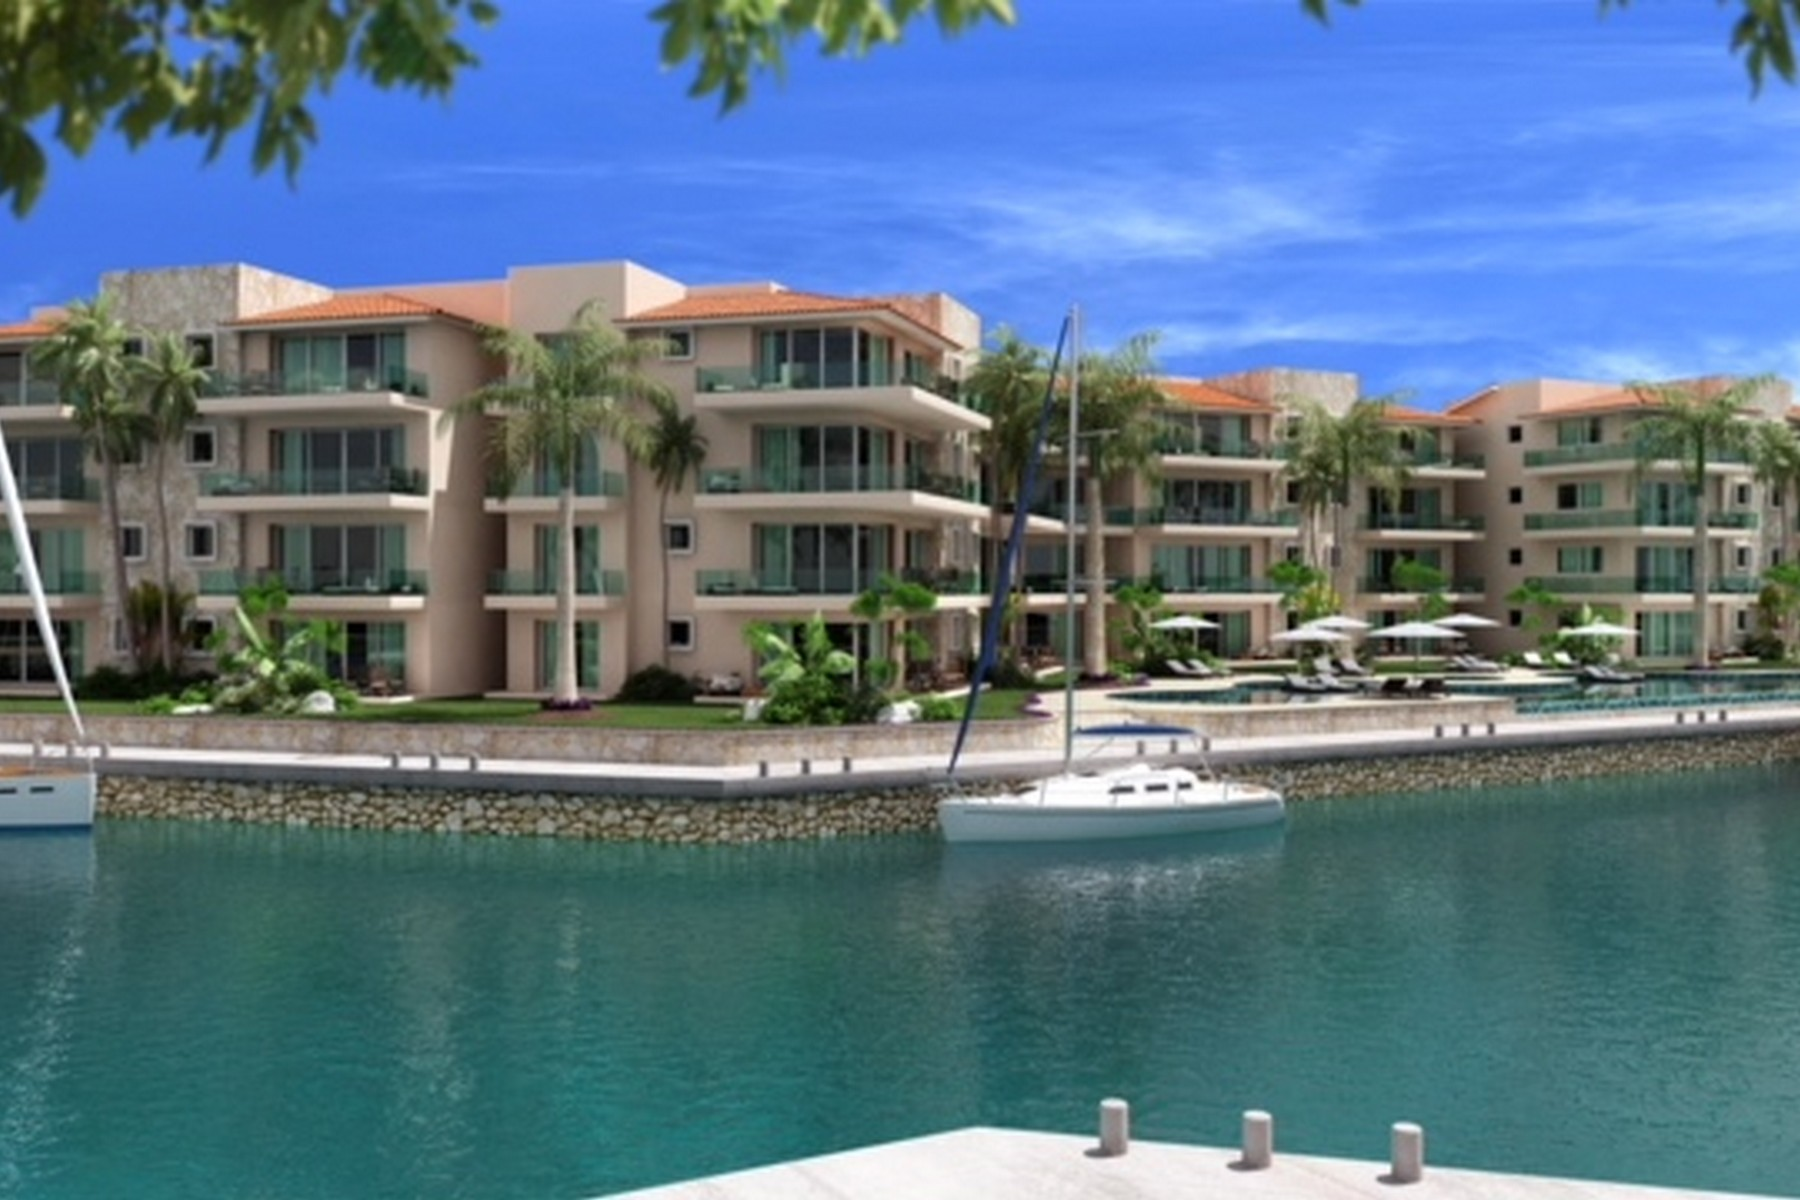 Condominium for Sale at MARINA AND GOLF COURSE CONDOMINIUM Marina and golf course condominium Lot 9, Mza 37 Puerto Aventuras, 77733 Mexico